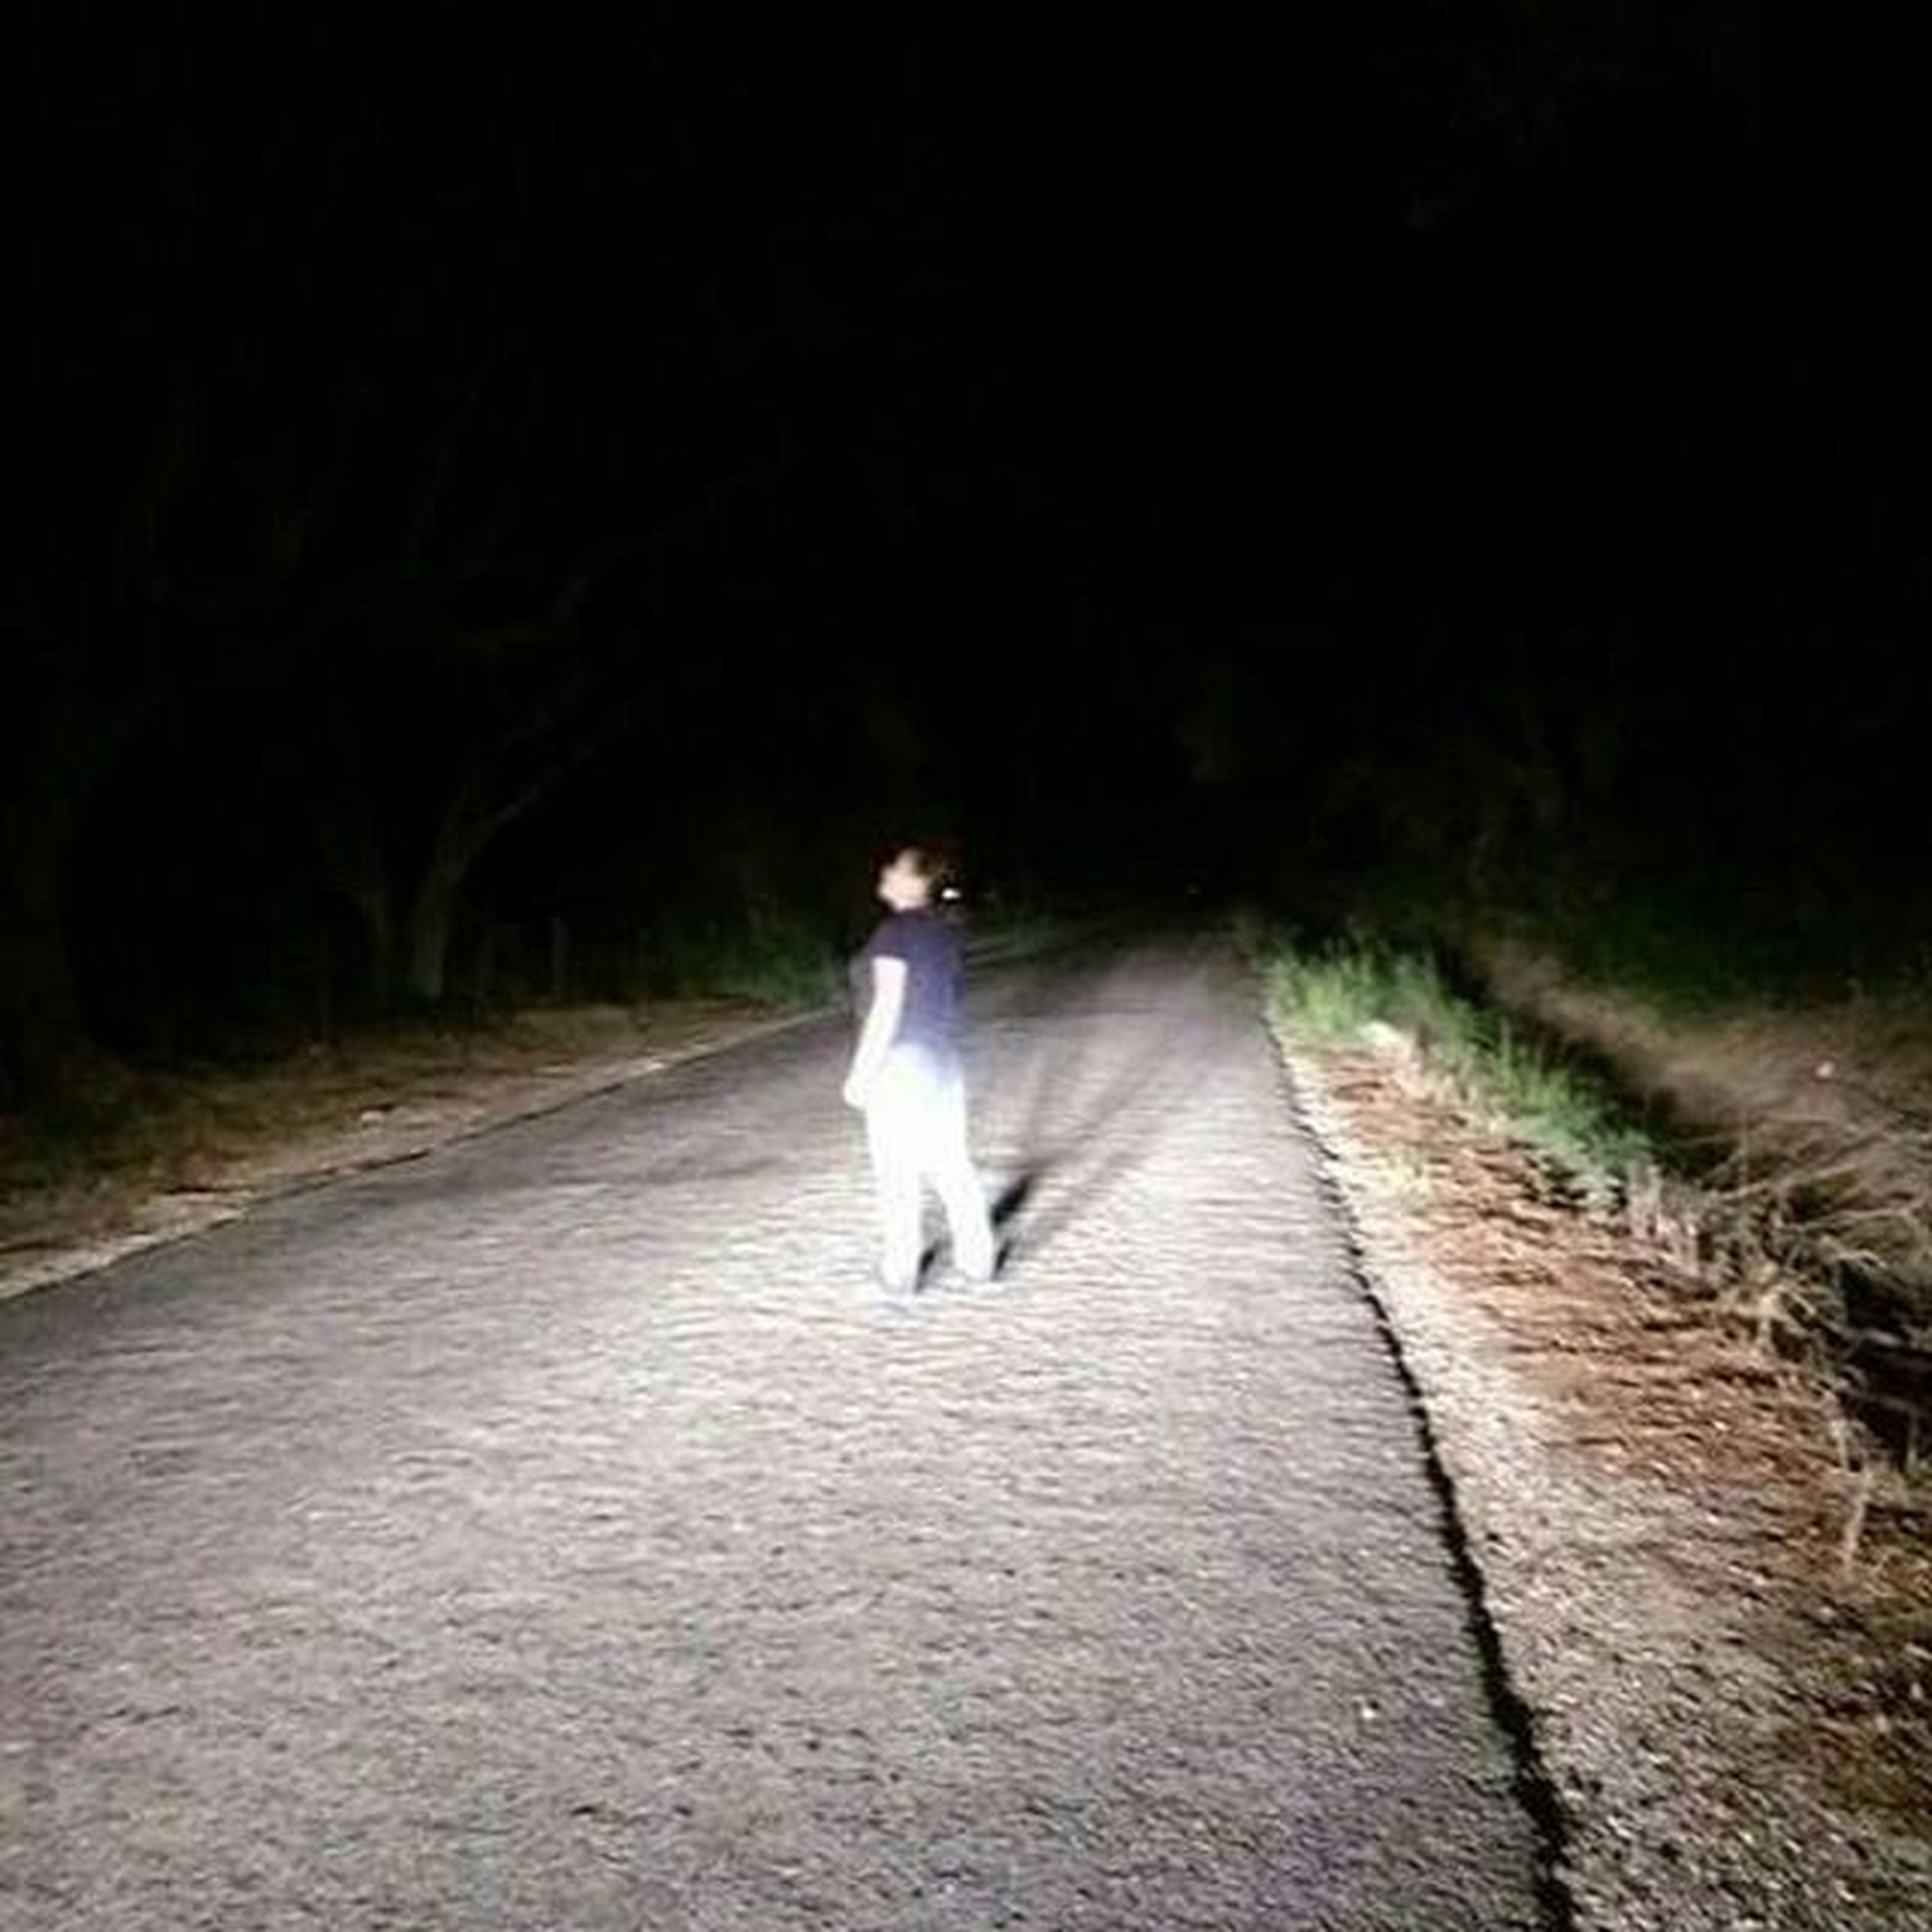 full length, lifestyles, rear view, walking, the way forward, night, casual clothing, standing, leisure activity, road, front view, street, diminishing perspective, vanishing point, person, young adult, illuminated, outdoors